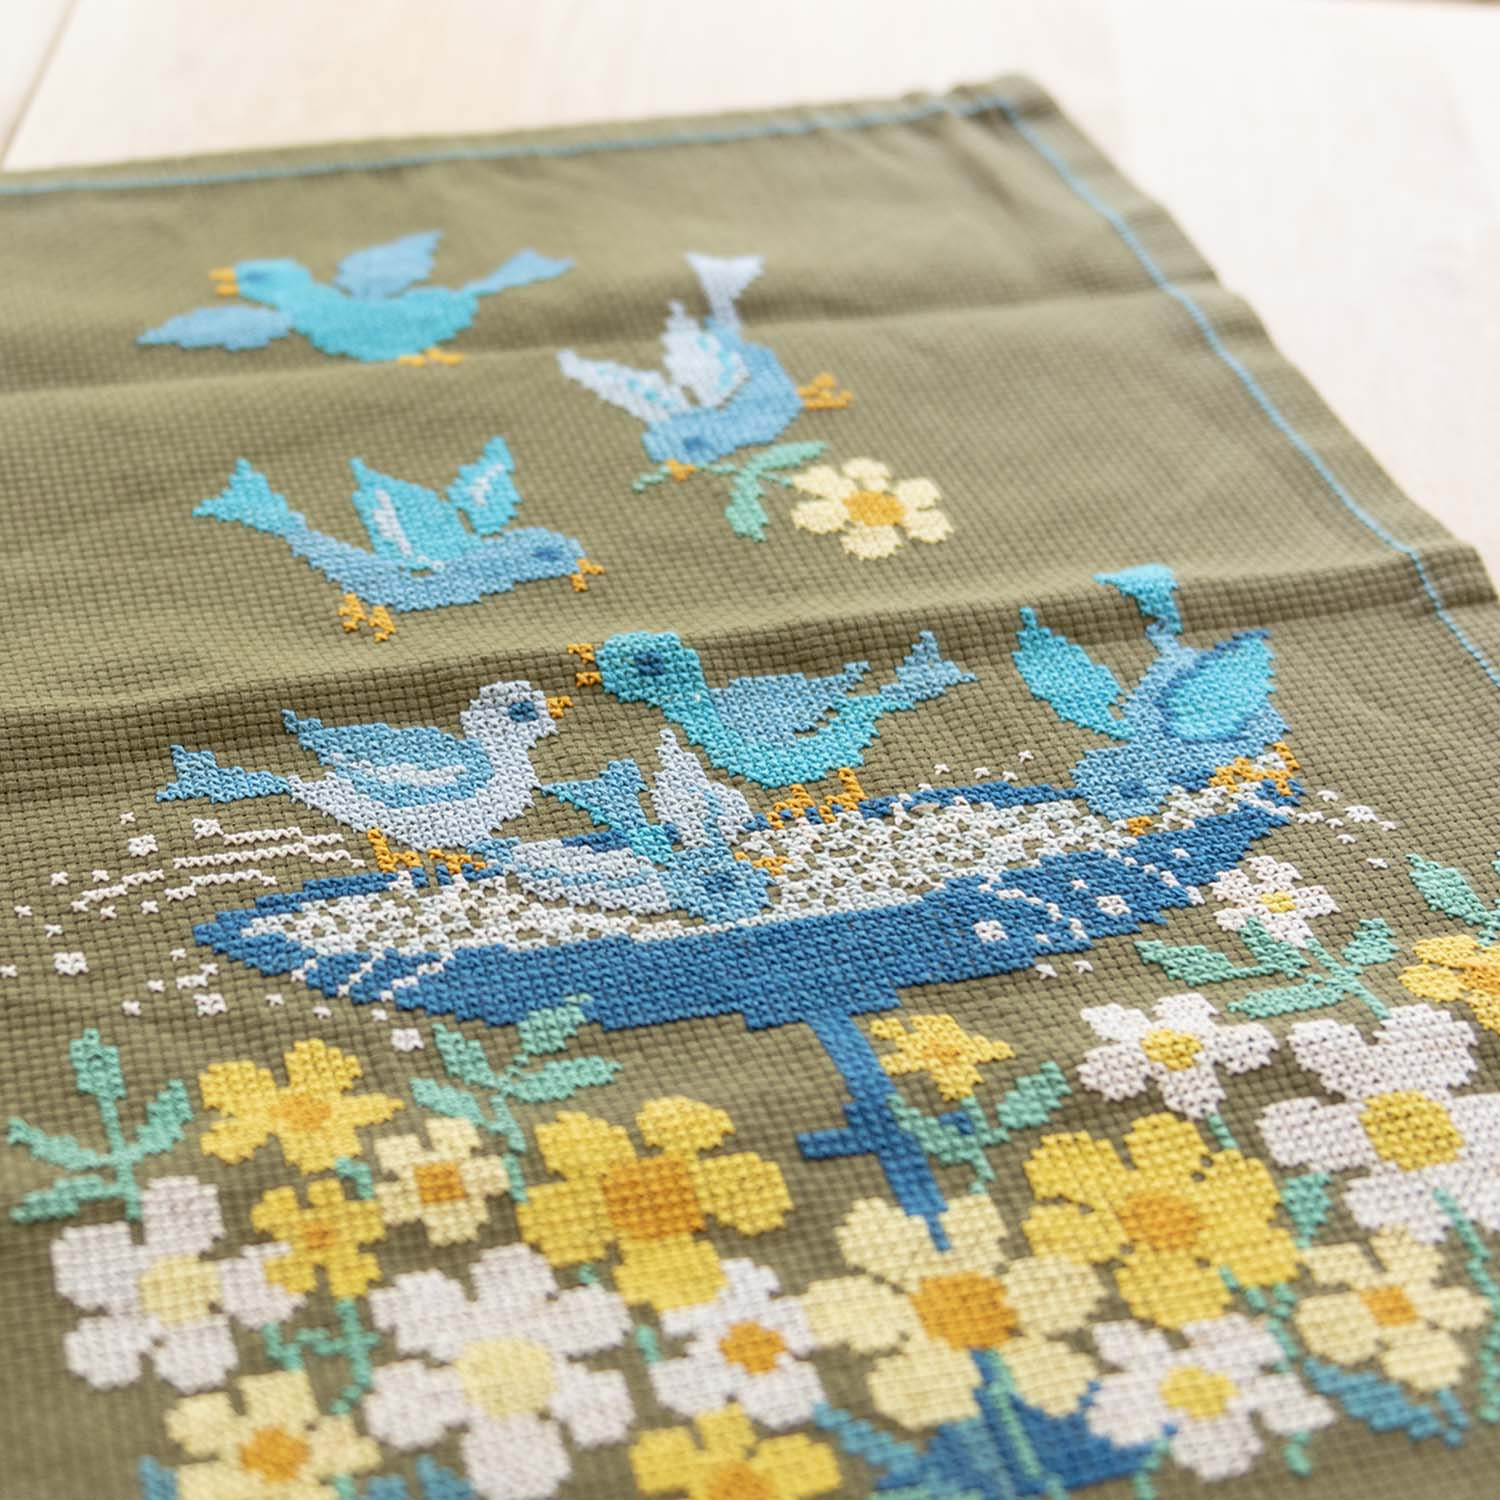 Embroidery Place Mat